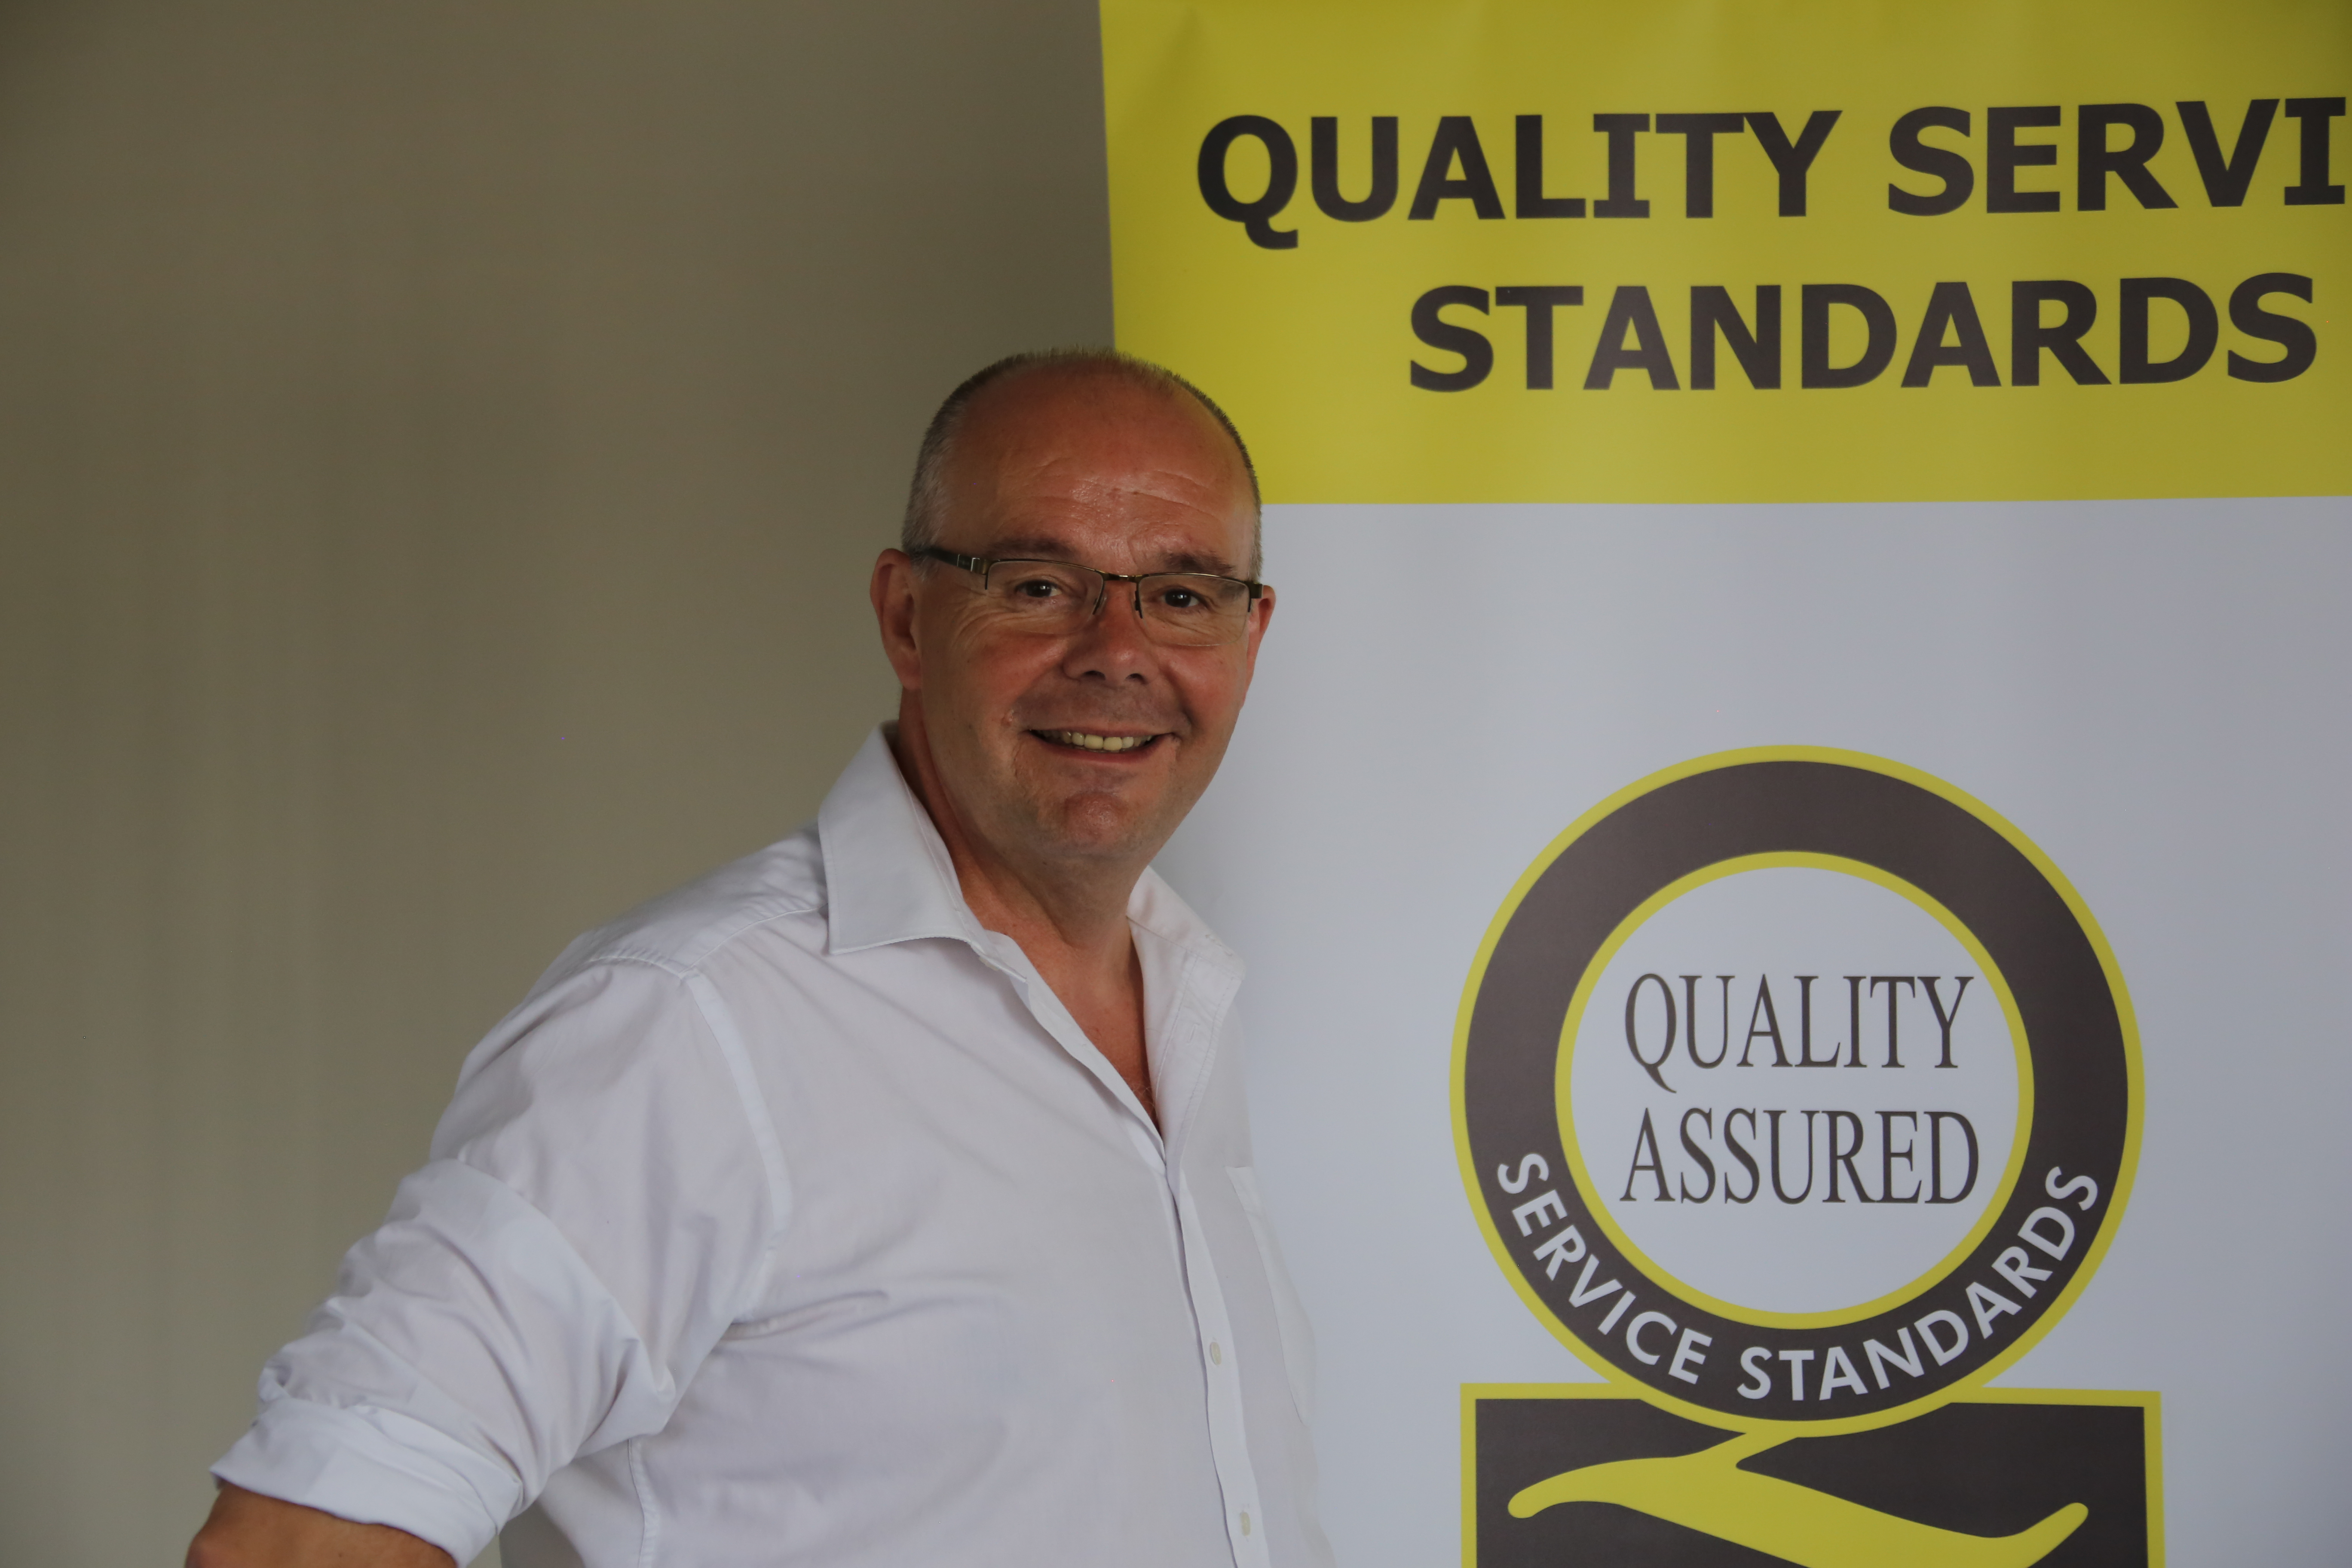 David Woodhouse, Quality Service Standards Ltd (QSS)